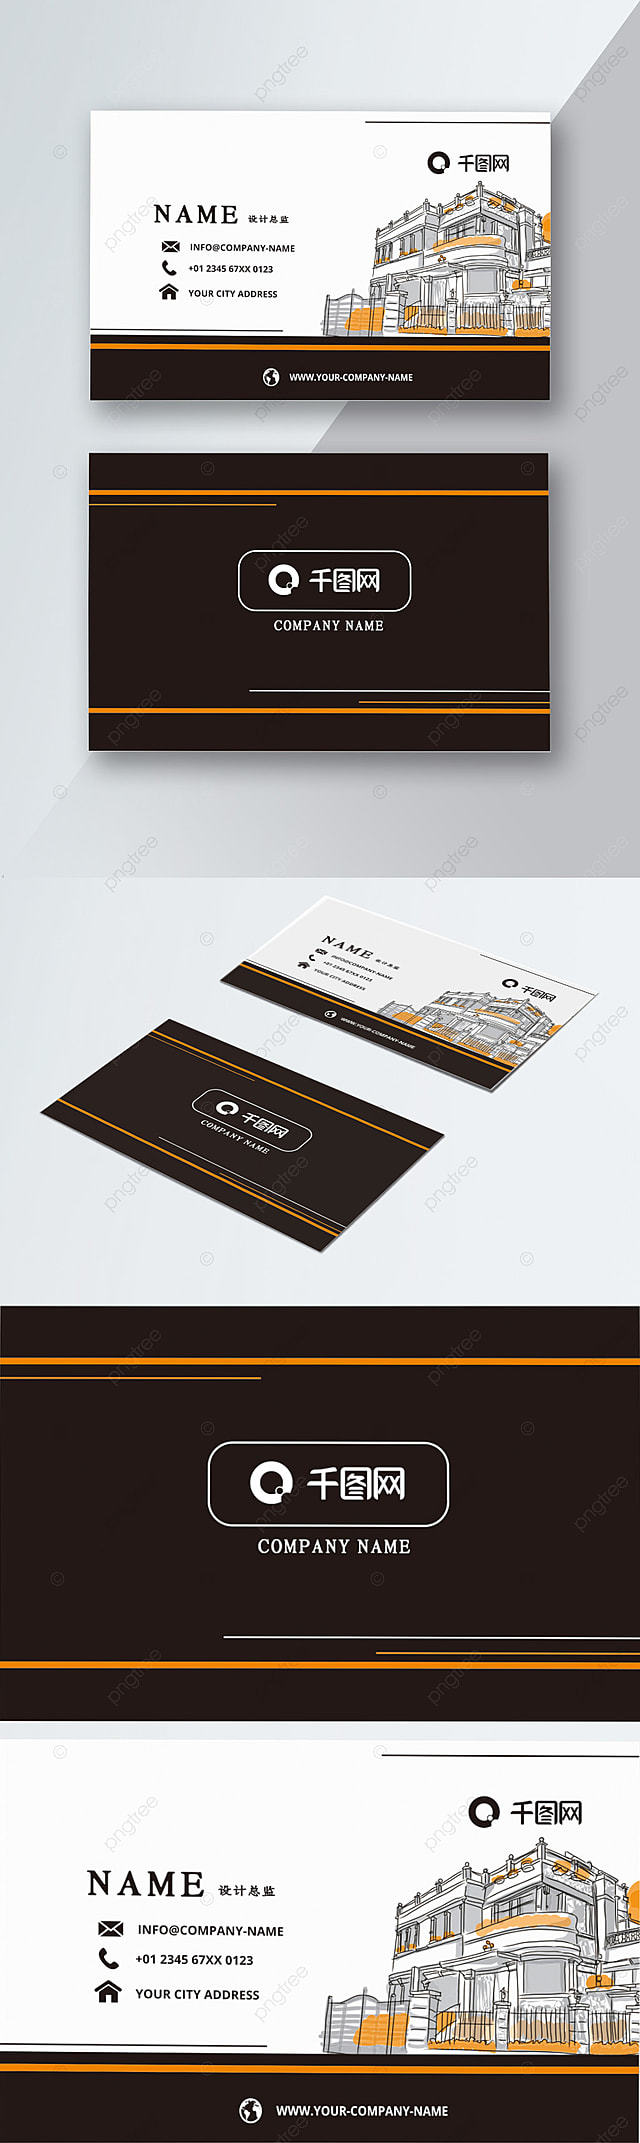 Sketch Supreme Building Business Card Material Download